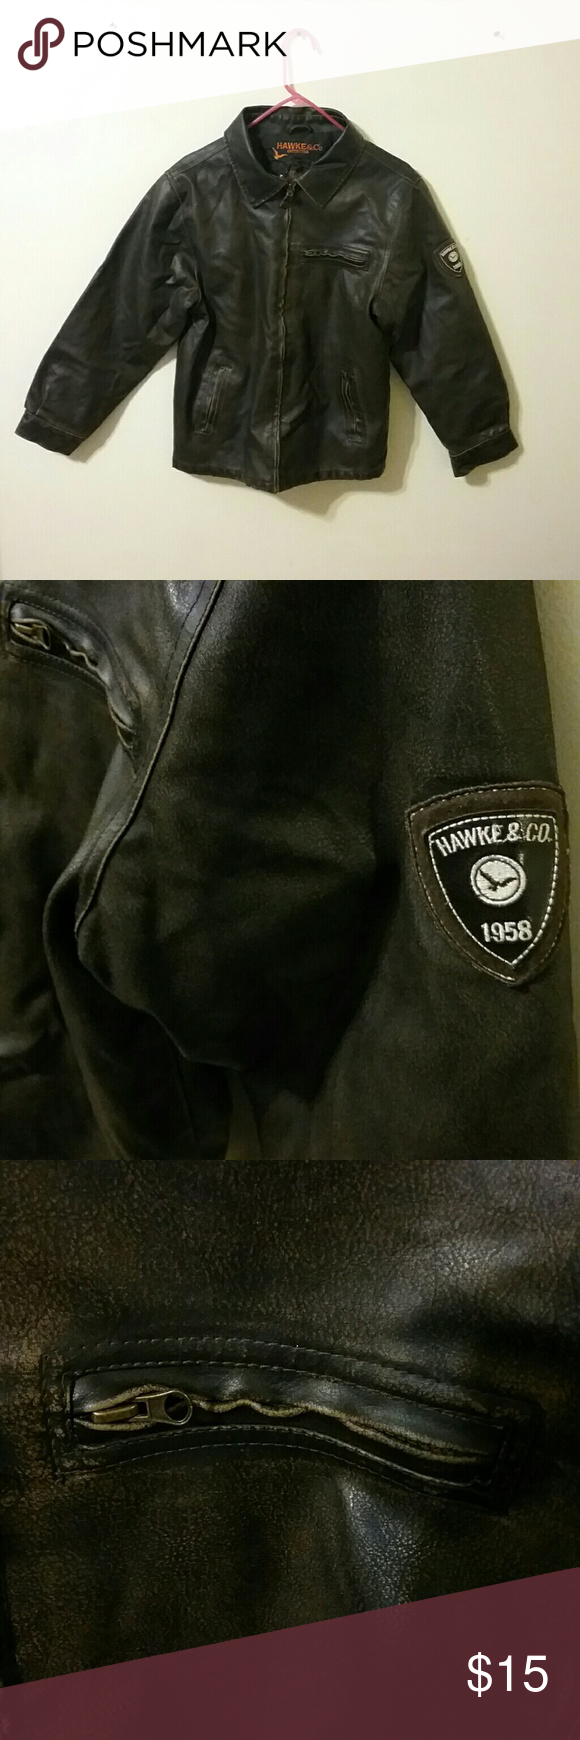 Hawke Co Outfitters Leather Jacket 18 20 W Patch Leather Jacket Jackets Clothes Design [ 1740 x 580 Pixel ]